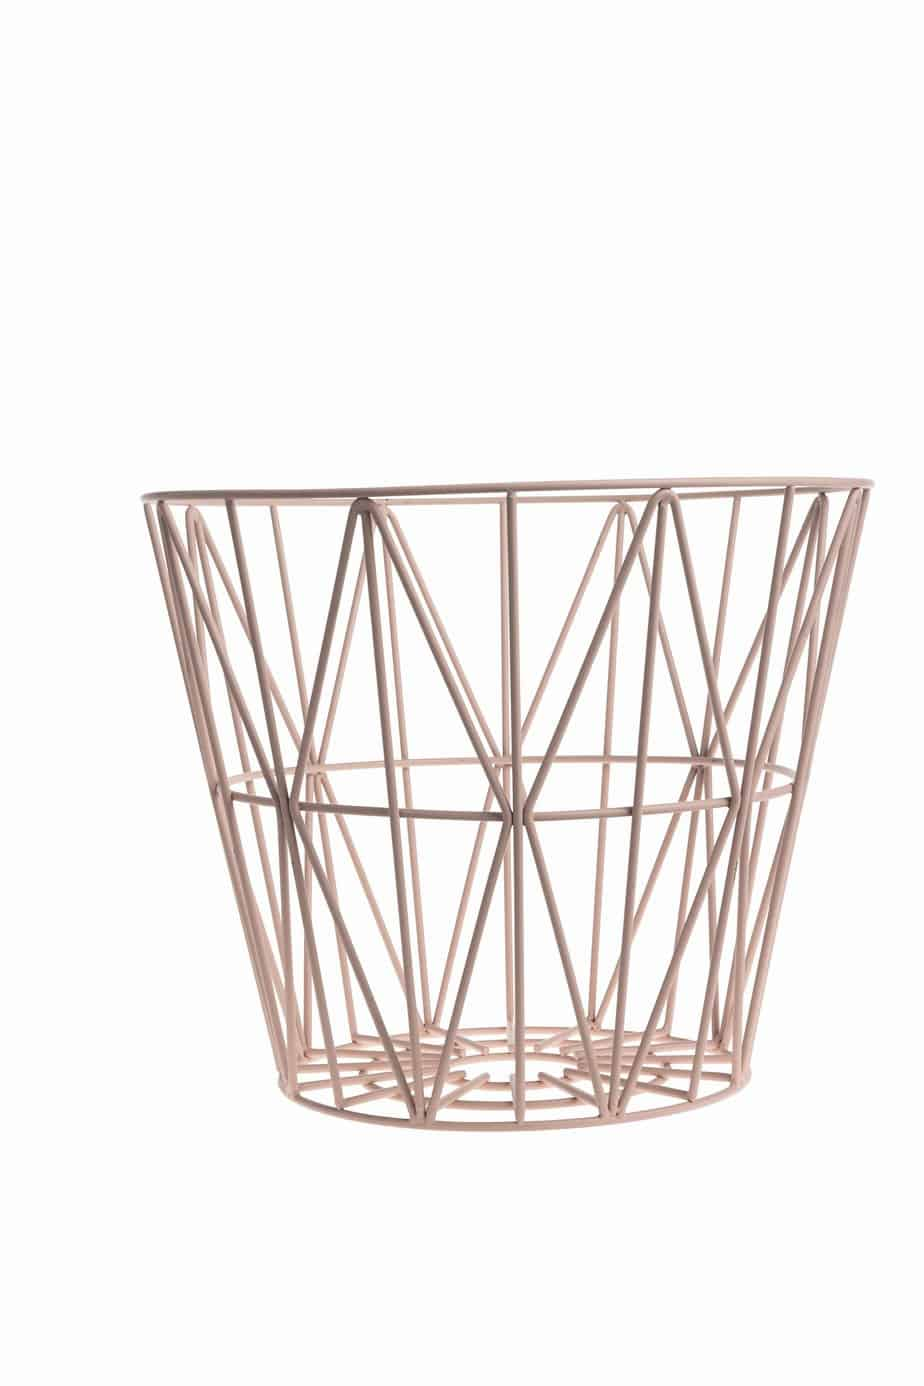 Fancy Baskets Decorative Wire Baskets Storage Baskets Laundry Shoppe